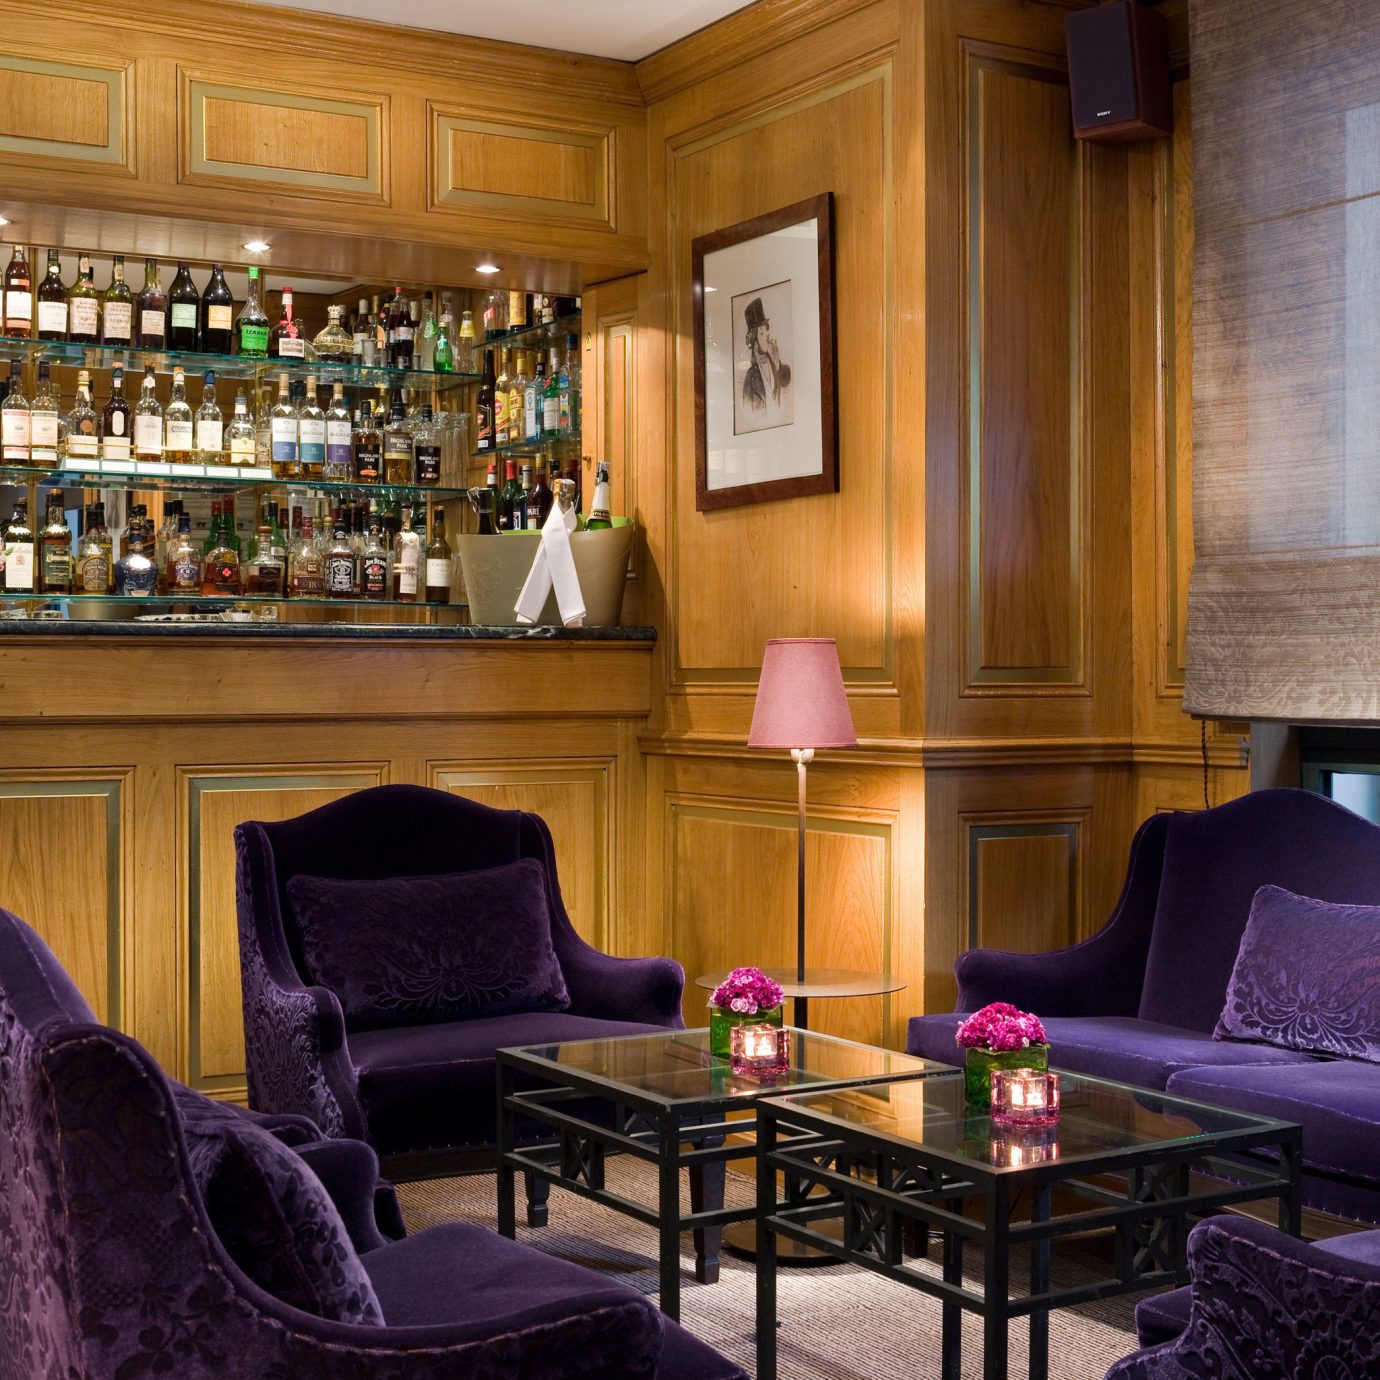 Bar Dining Drink Eat Elegant Lounge Luxury chair property building home living room purple mansion recreation room